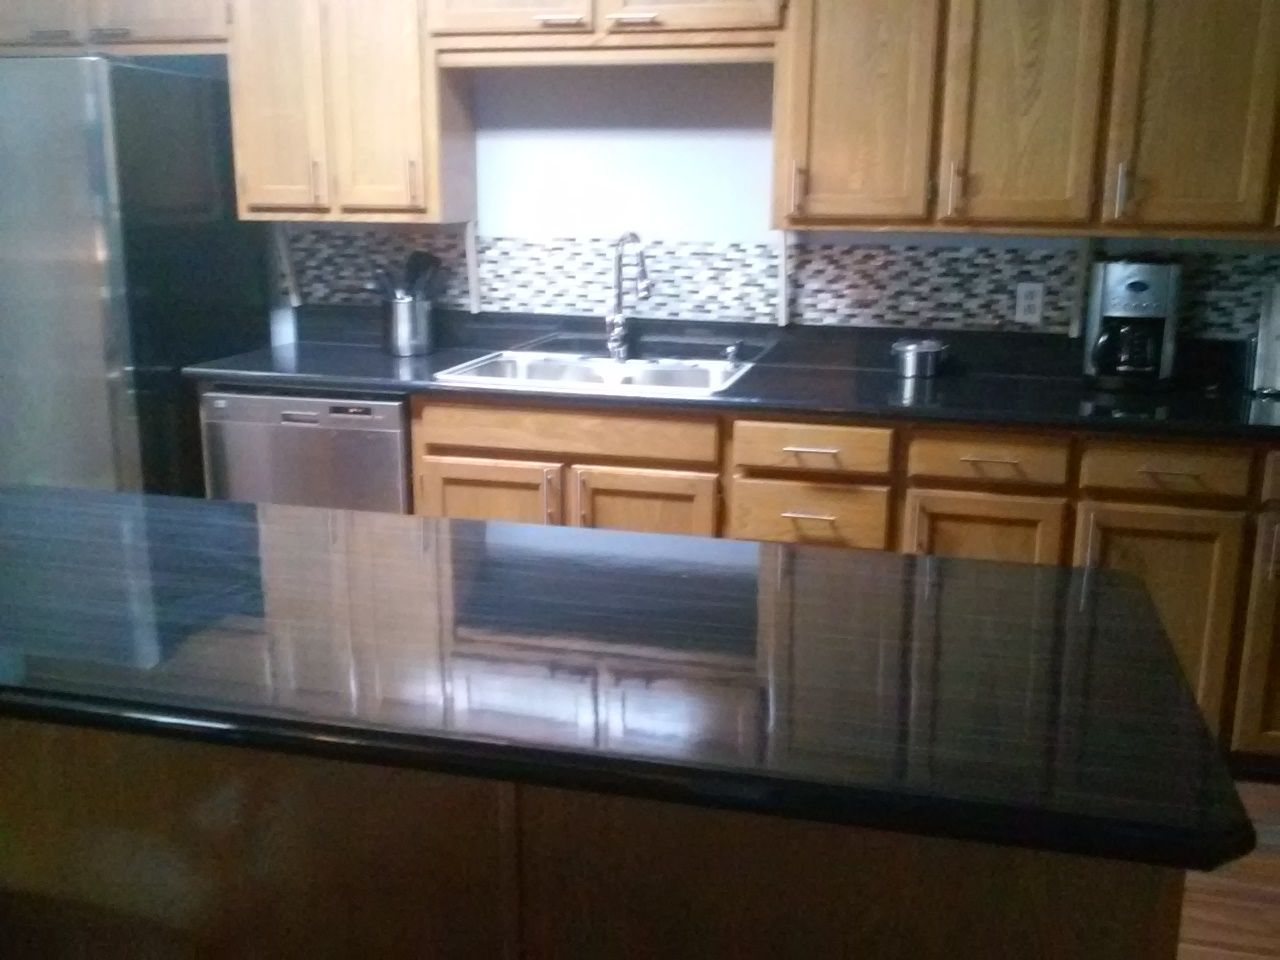 Lovely Kitchen New Countertops Wilsonart Laminate Countertops, Madagascar, Made  And Installed By The Cabinetry